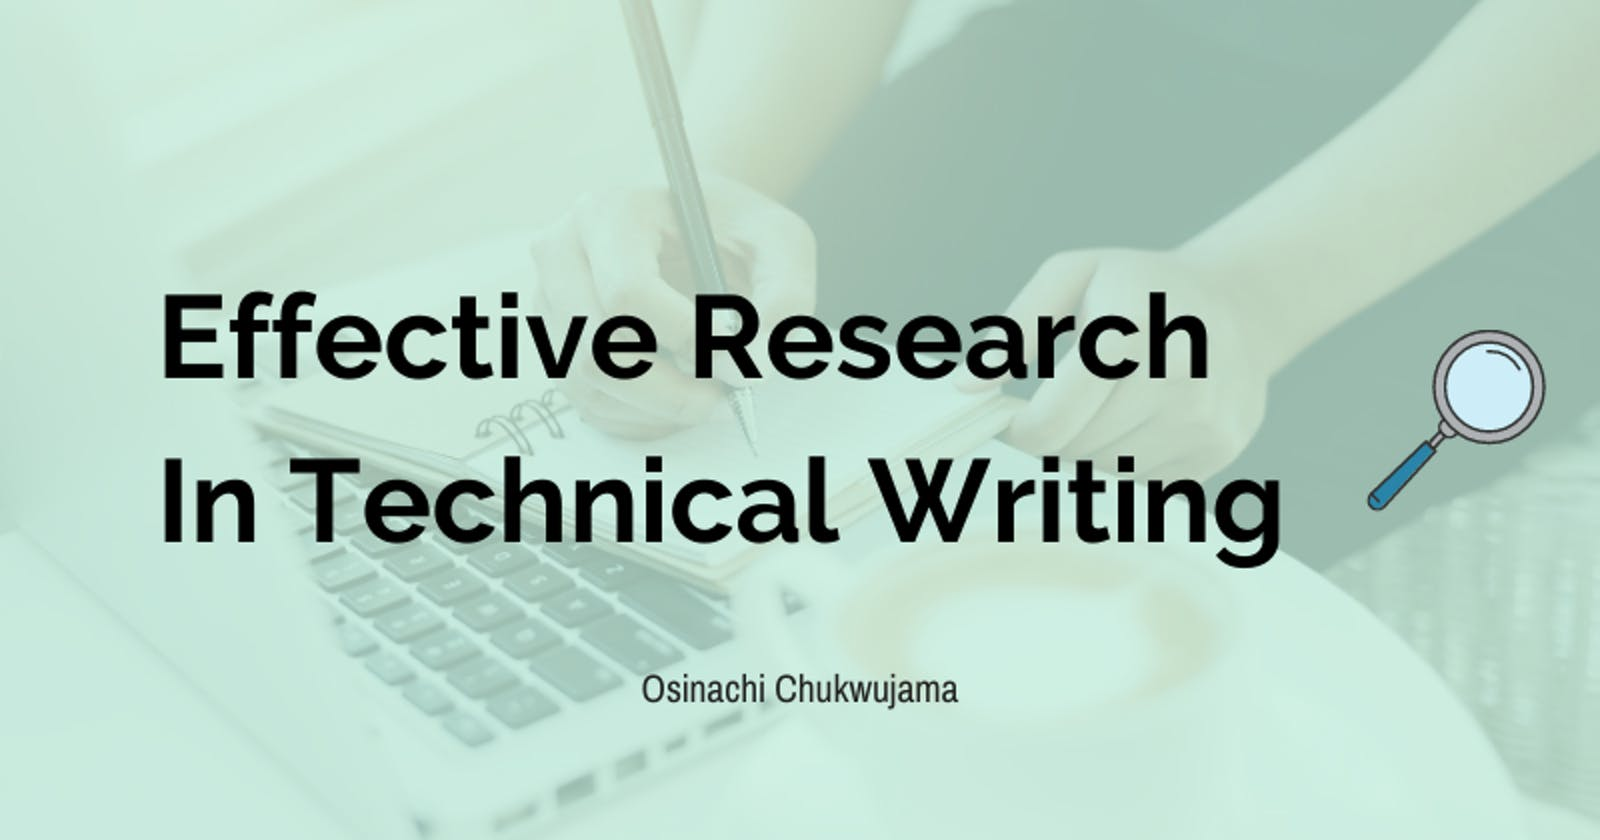 Effective research in technical writing